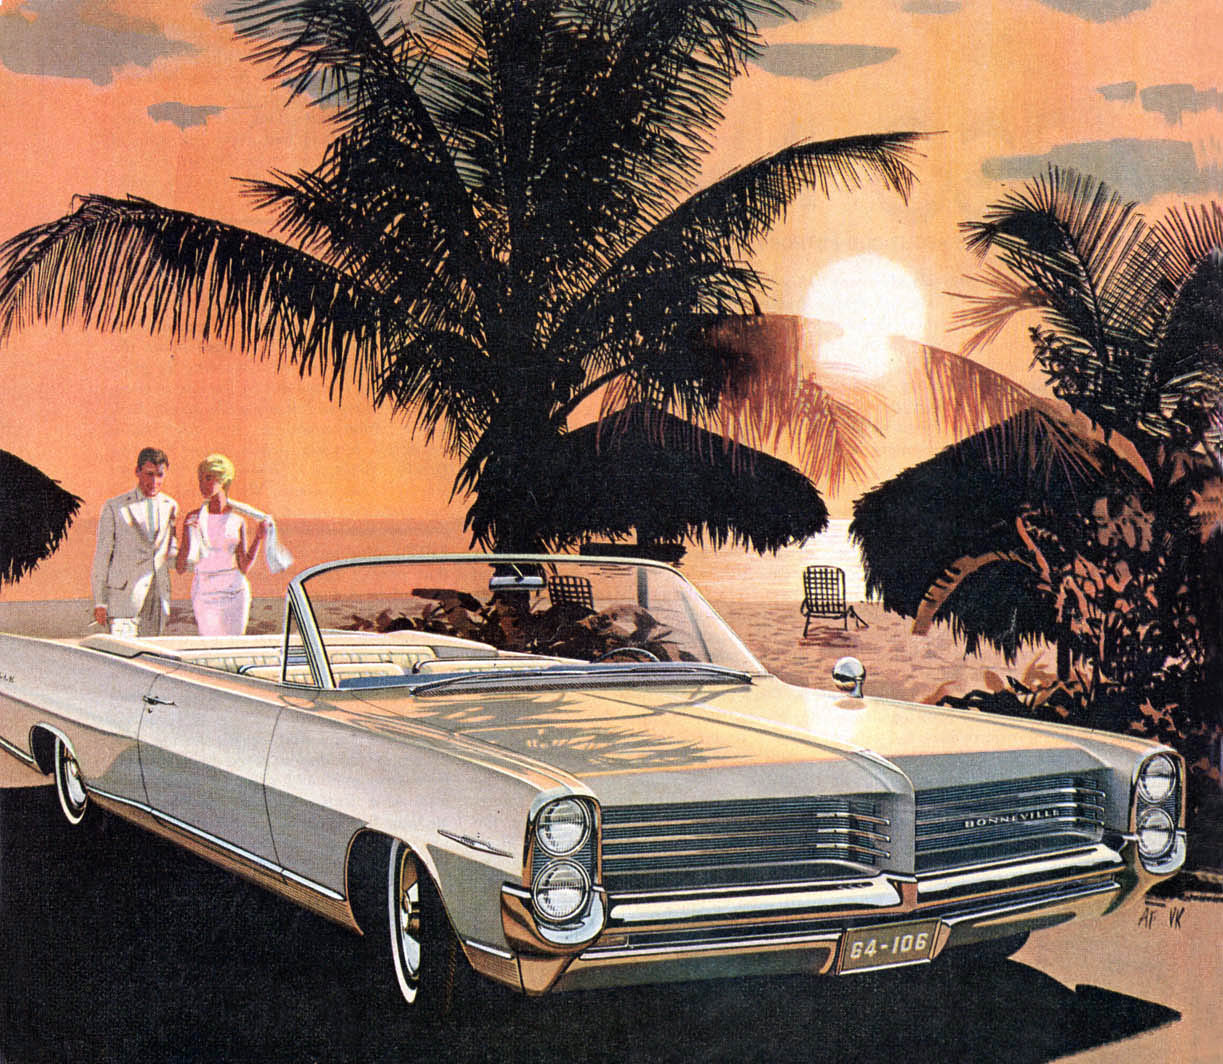 1964 Bonneville - Barbados Sunset